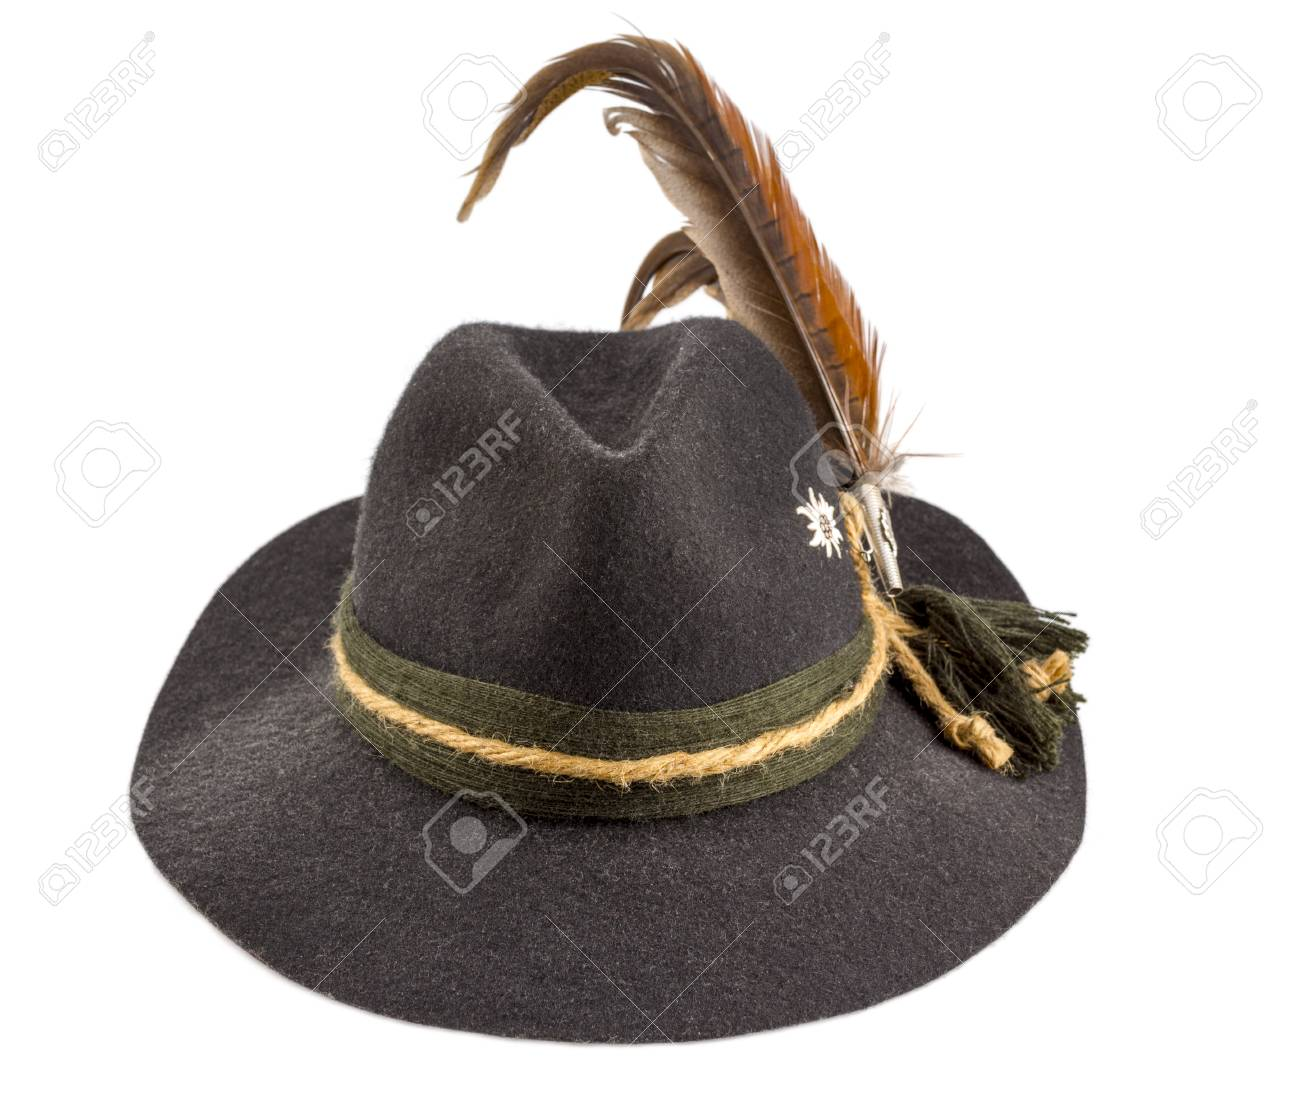 53e52f7f76c Tyrolean Hat With A Feather On A White Background Stock Photo ...